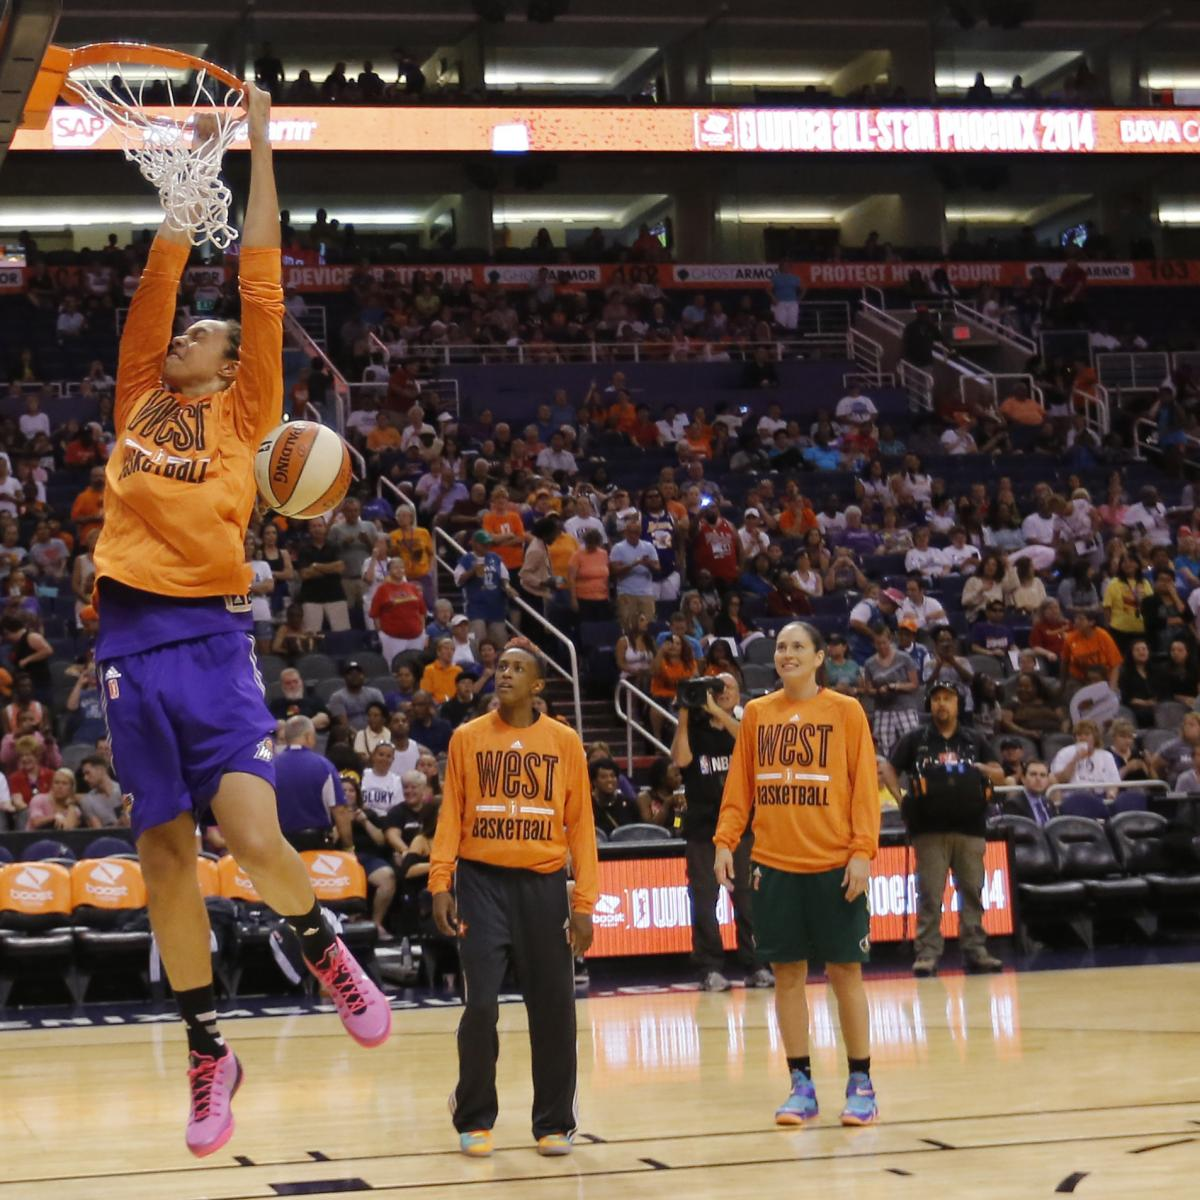 Colorado Shooting R H Youtube Com: How Viral Dunkers Can Revolutionize Women's Basketball